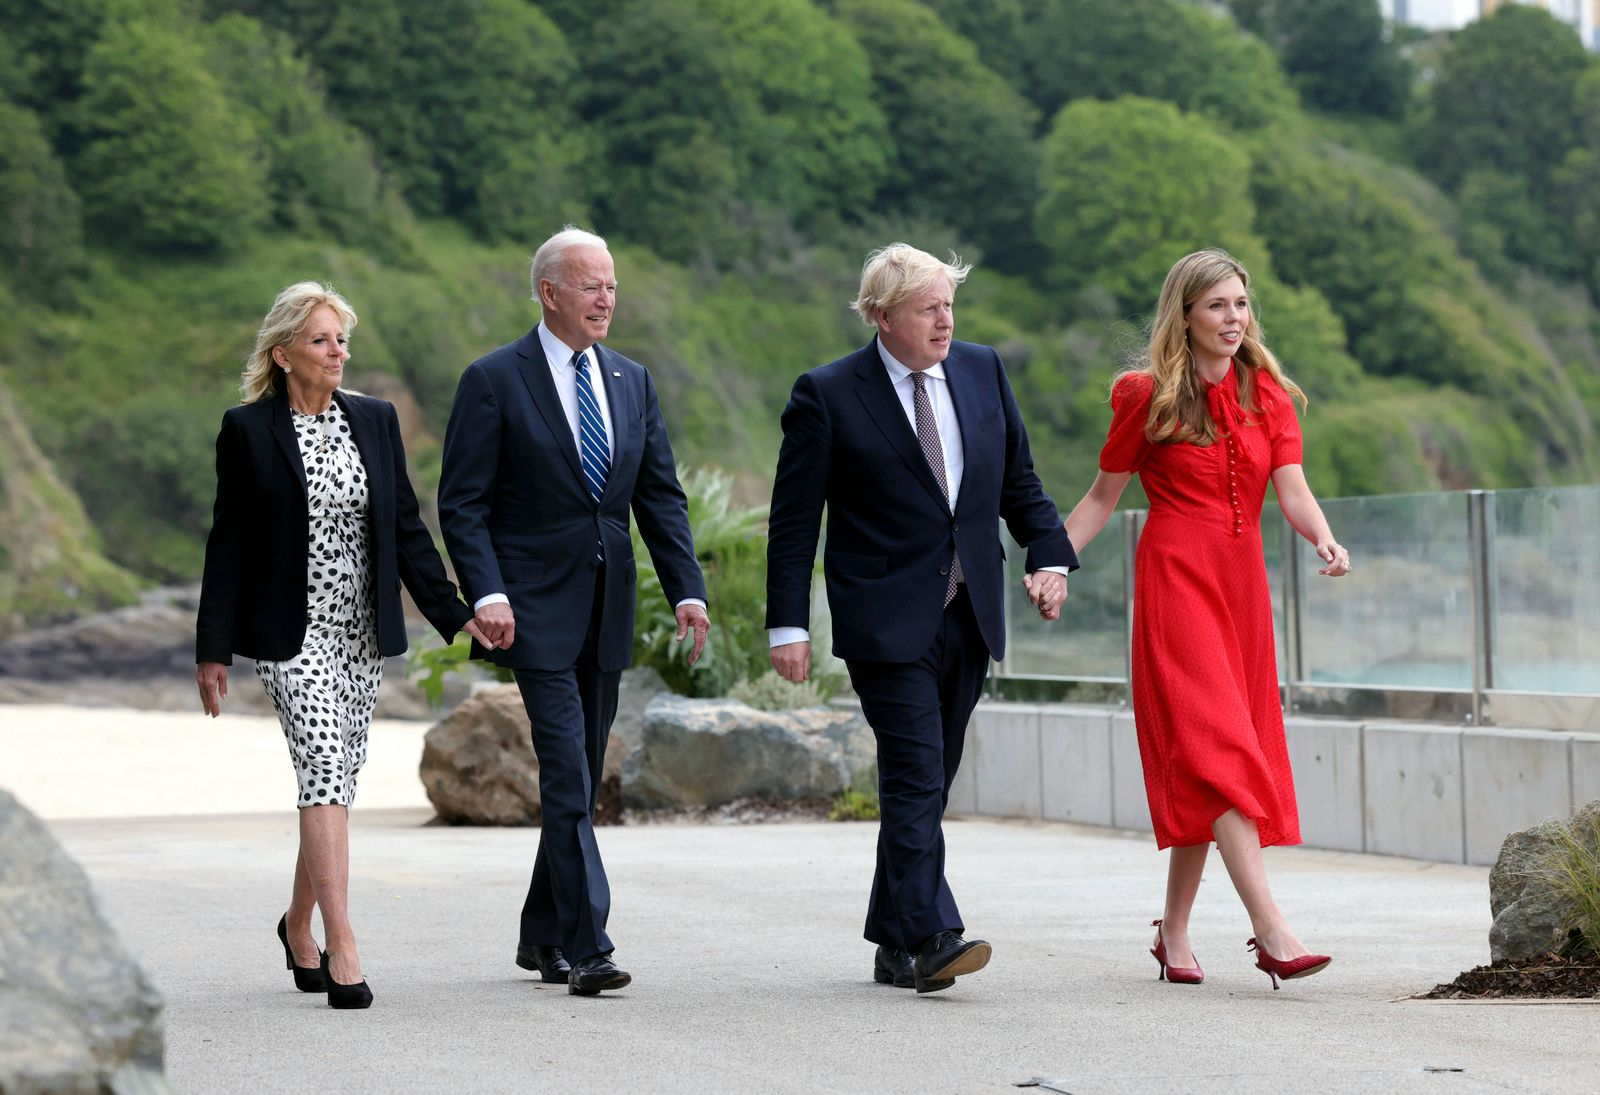 (210610) -- FALMOUTH (BRITAIN), June 10, 2021 -- British Prime Minister Boris Johnson (2nd R) and his wife Carrie Symon